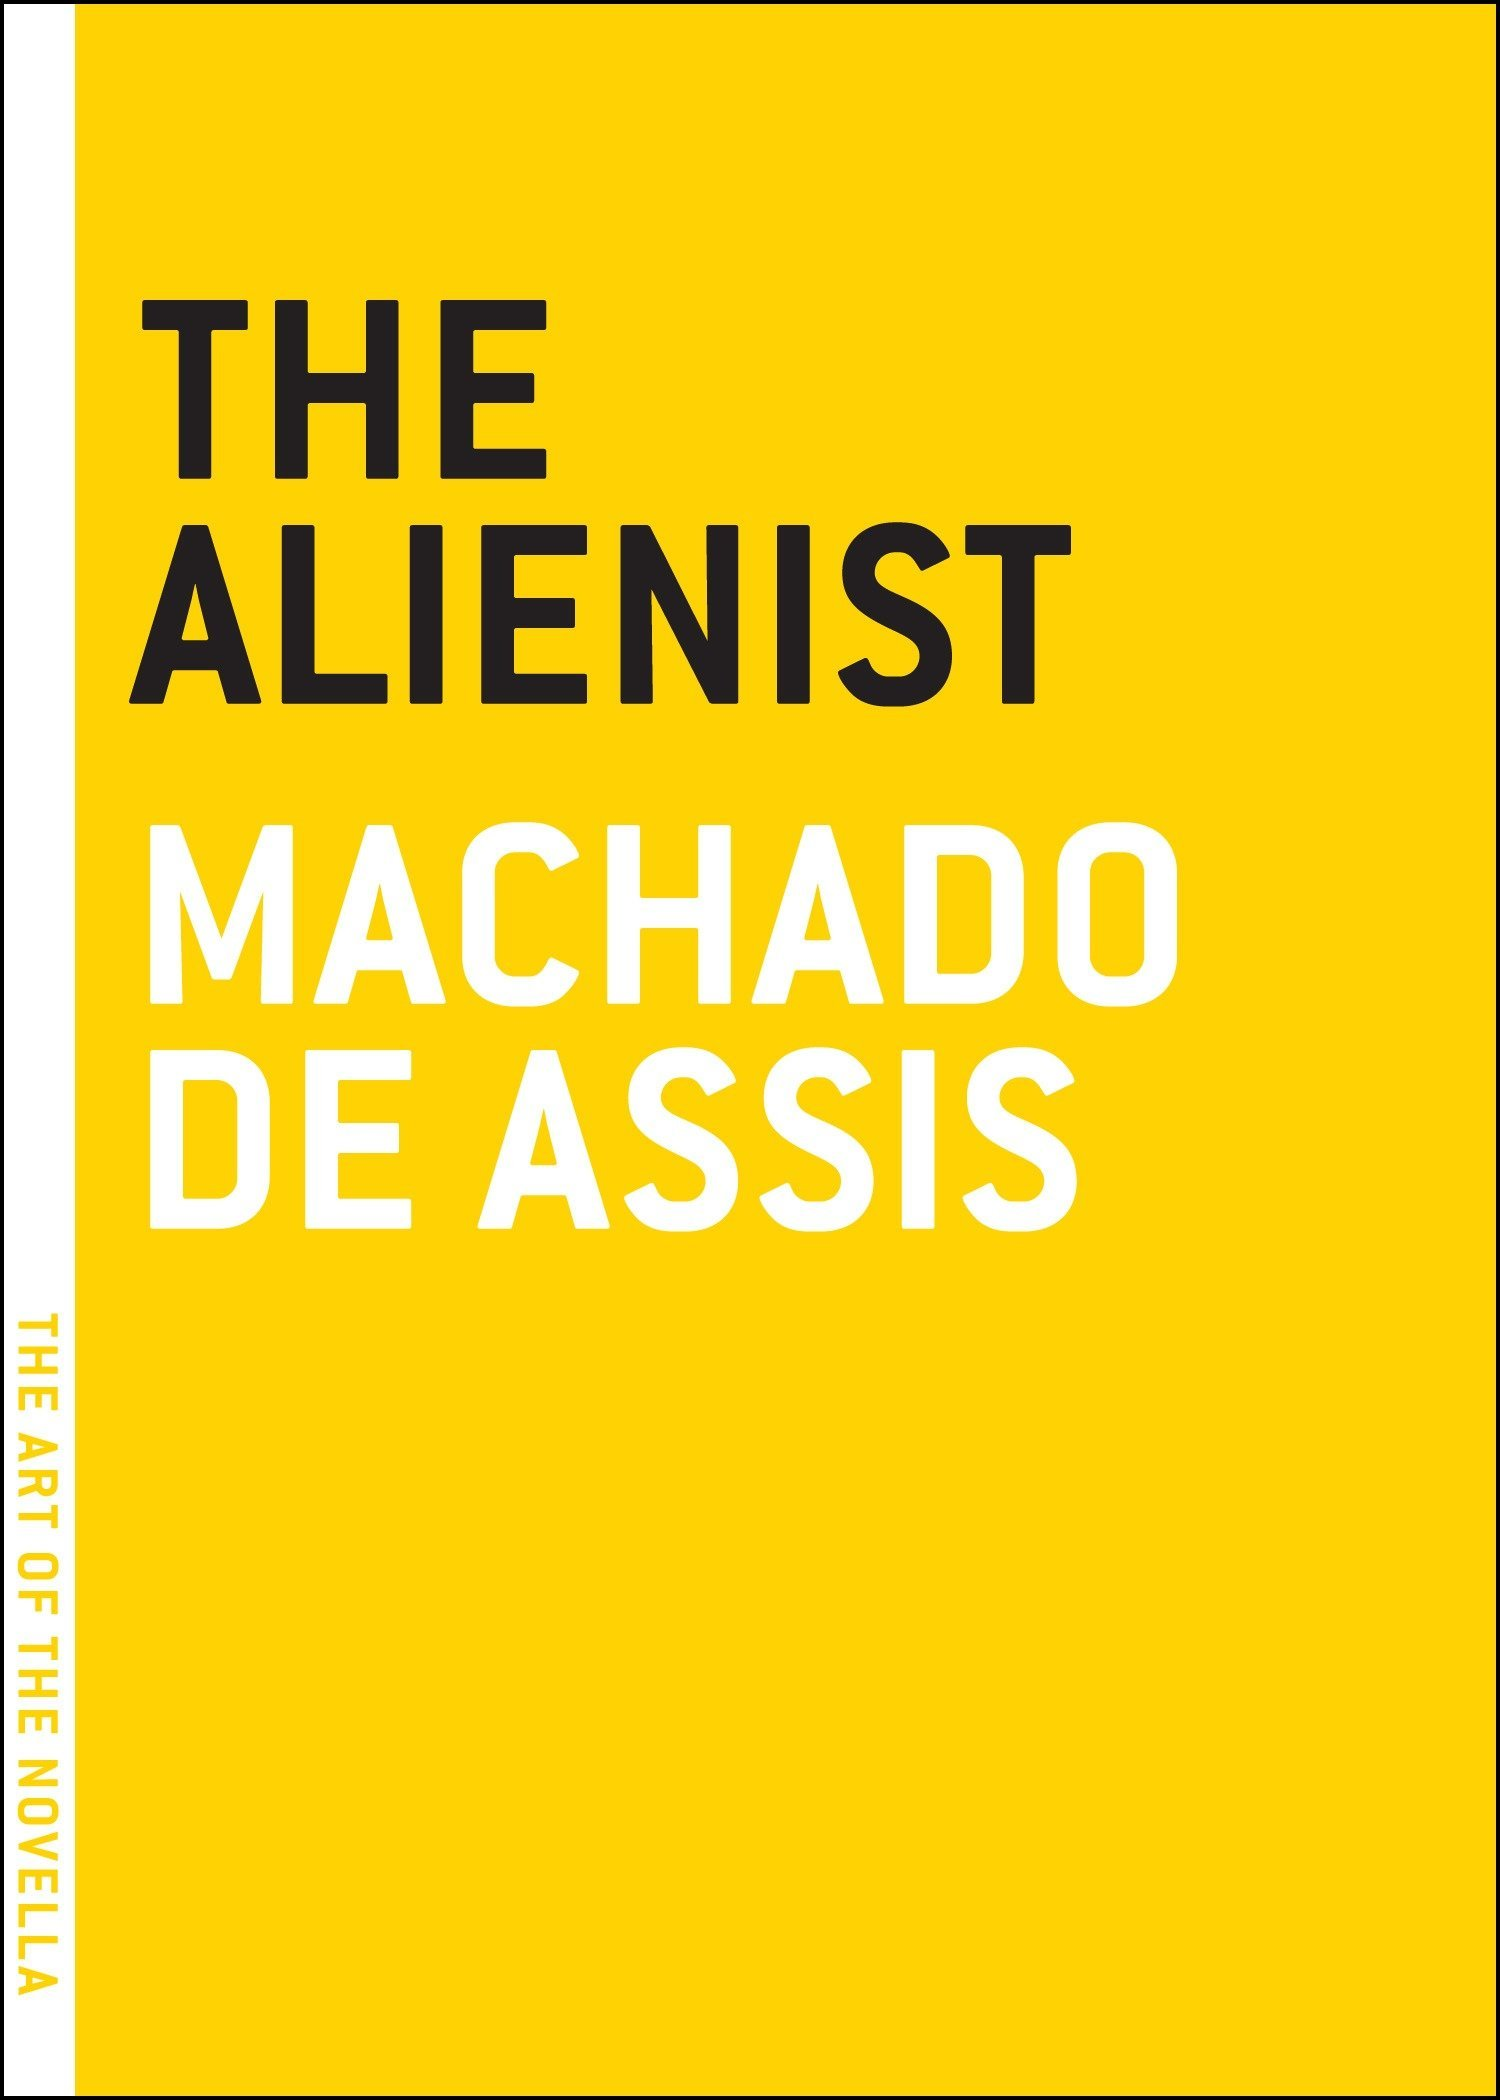 The Alienist – Machado de Assis